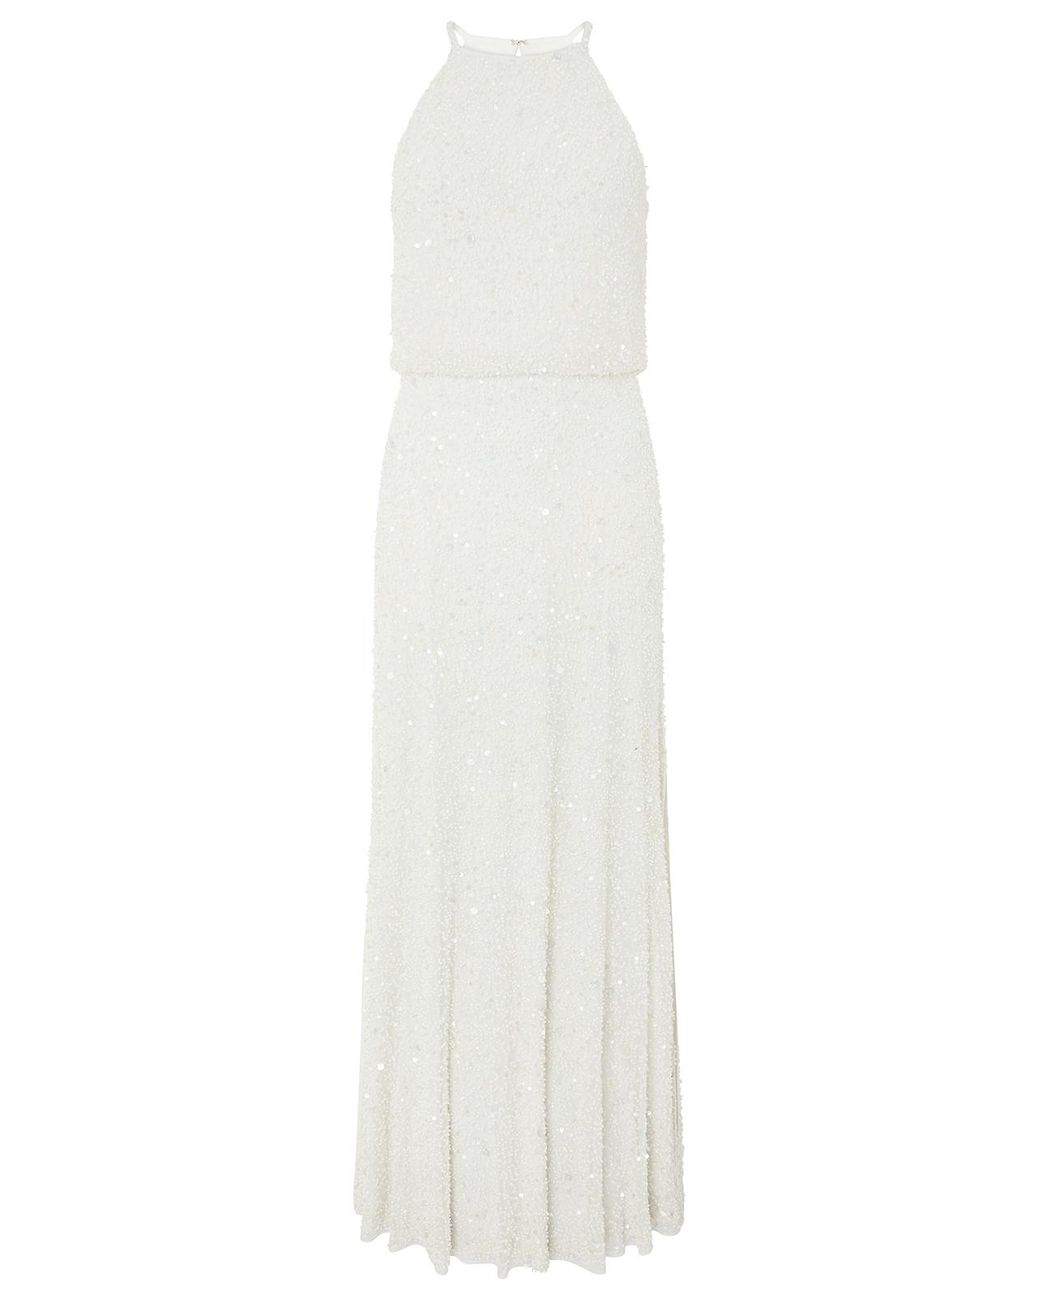 df42b09e69 Monsoon Diana Embellished Bridal Maxi Dress in White - Lyst